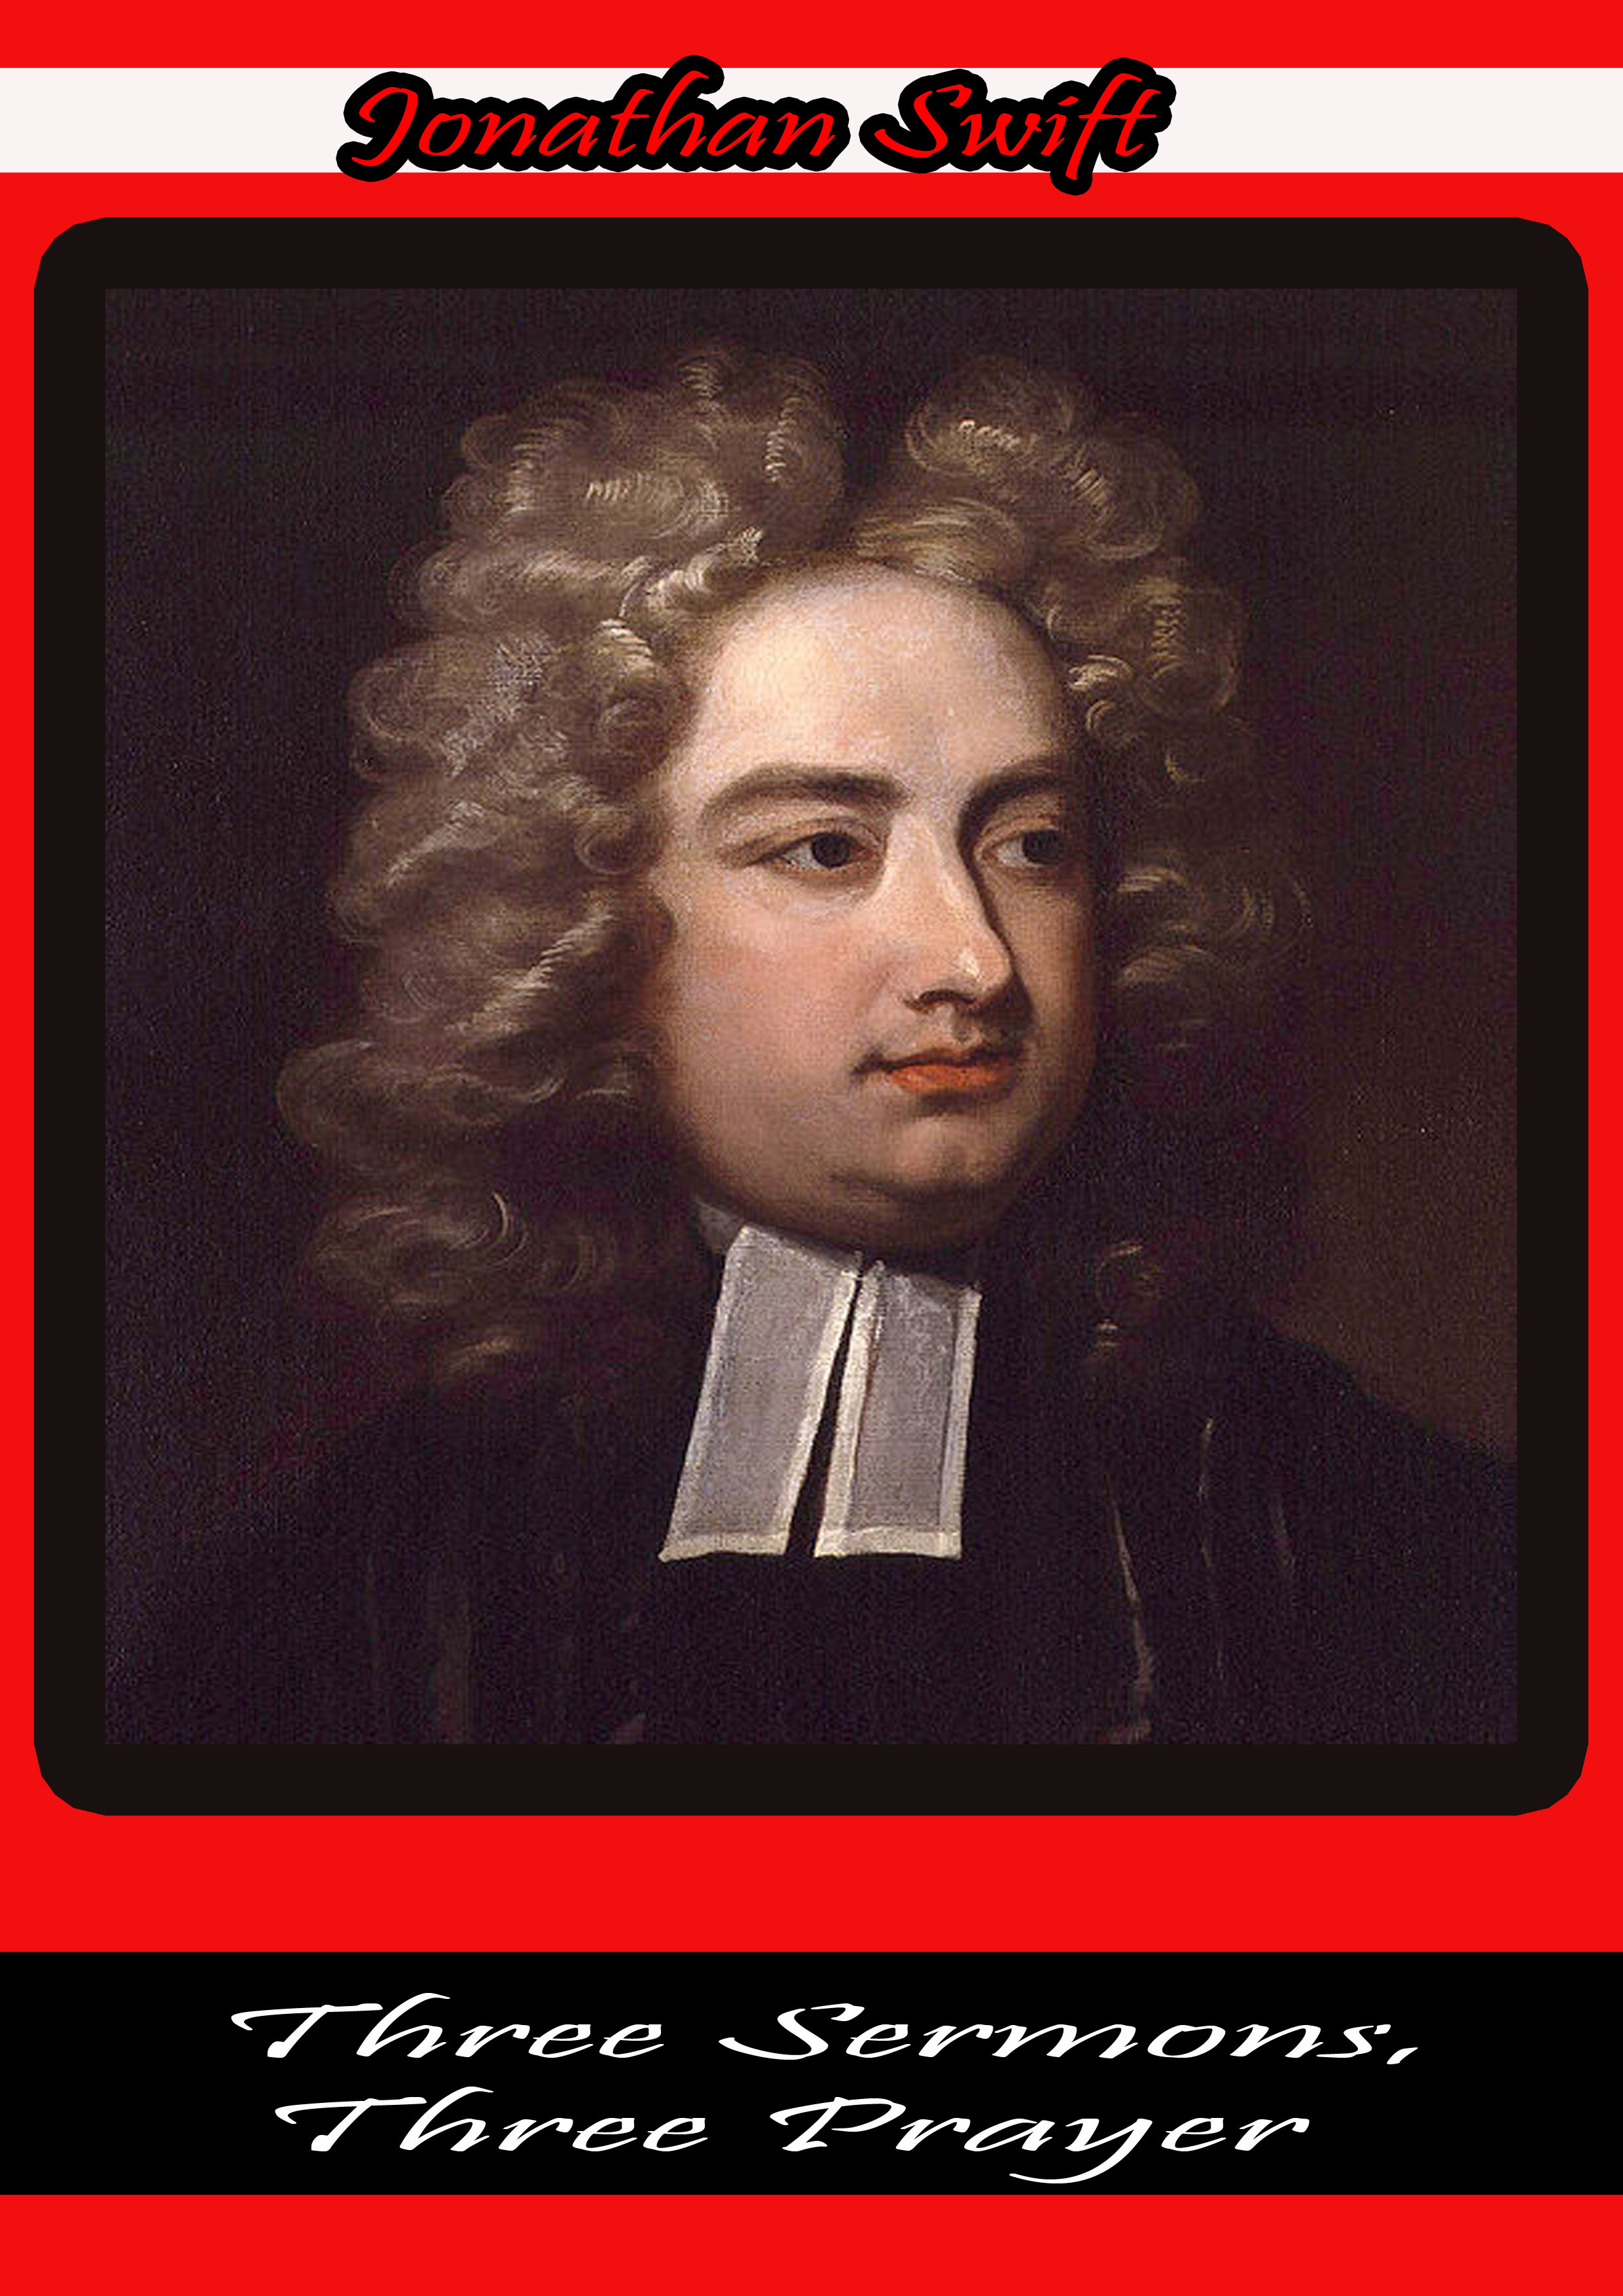 Jonathan Swift - Three Sermons, Three Prayer